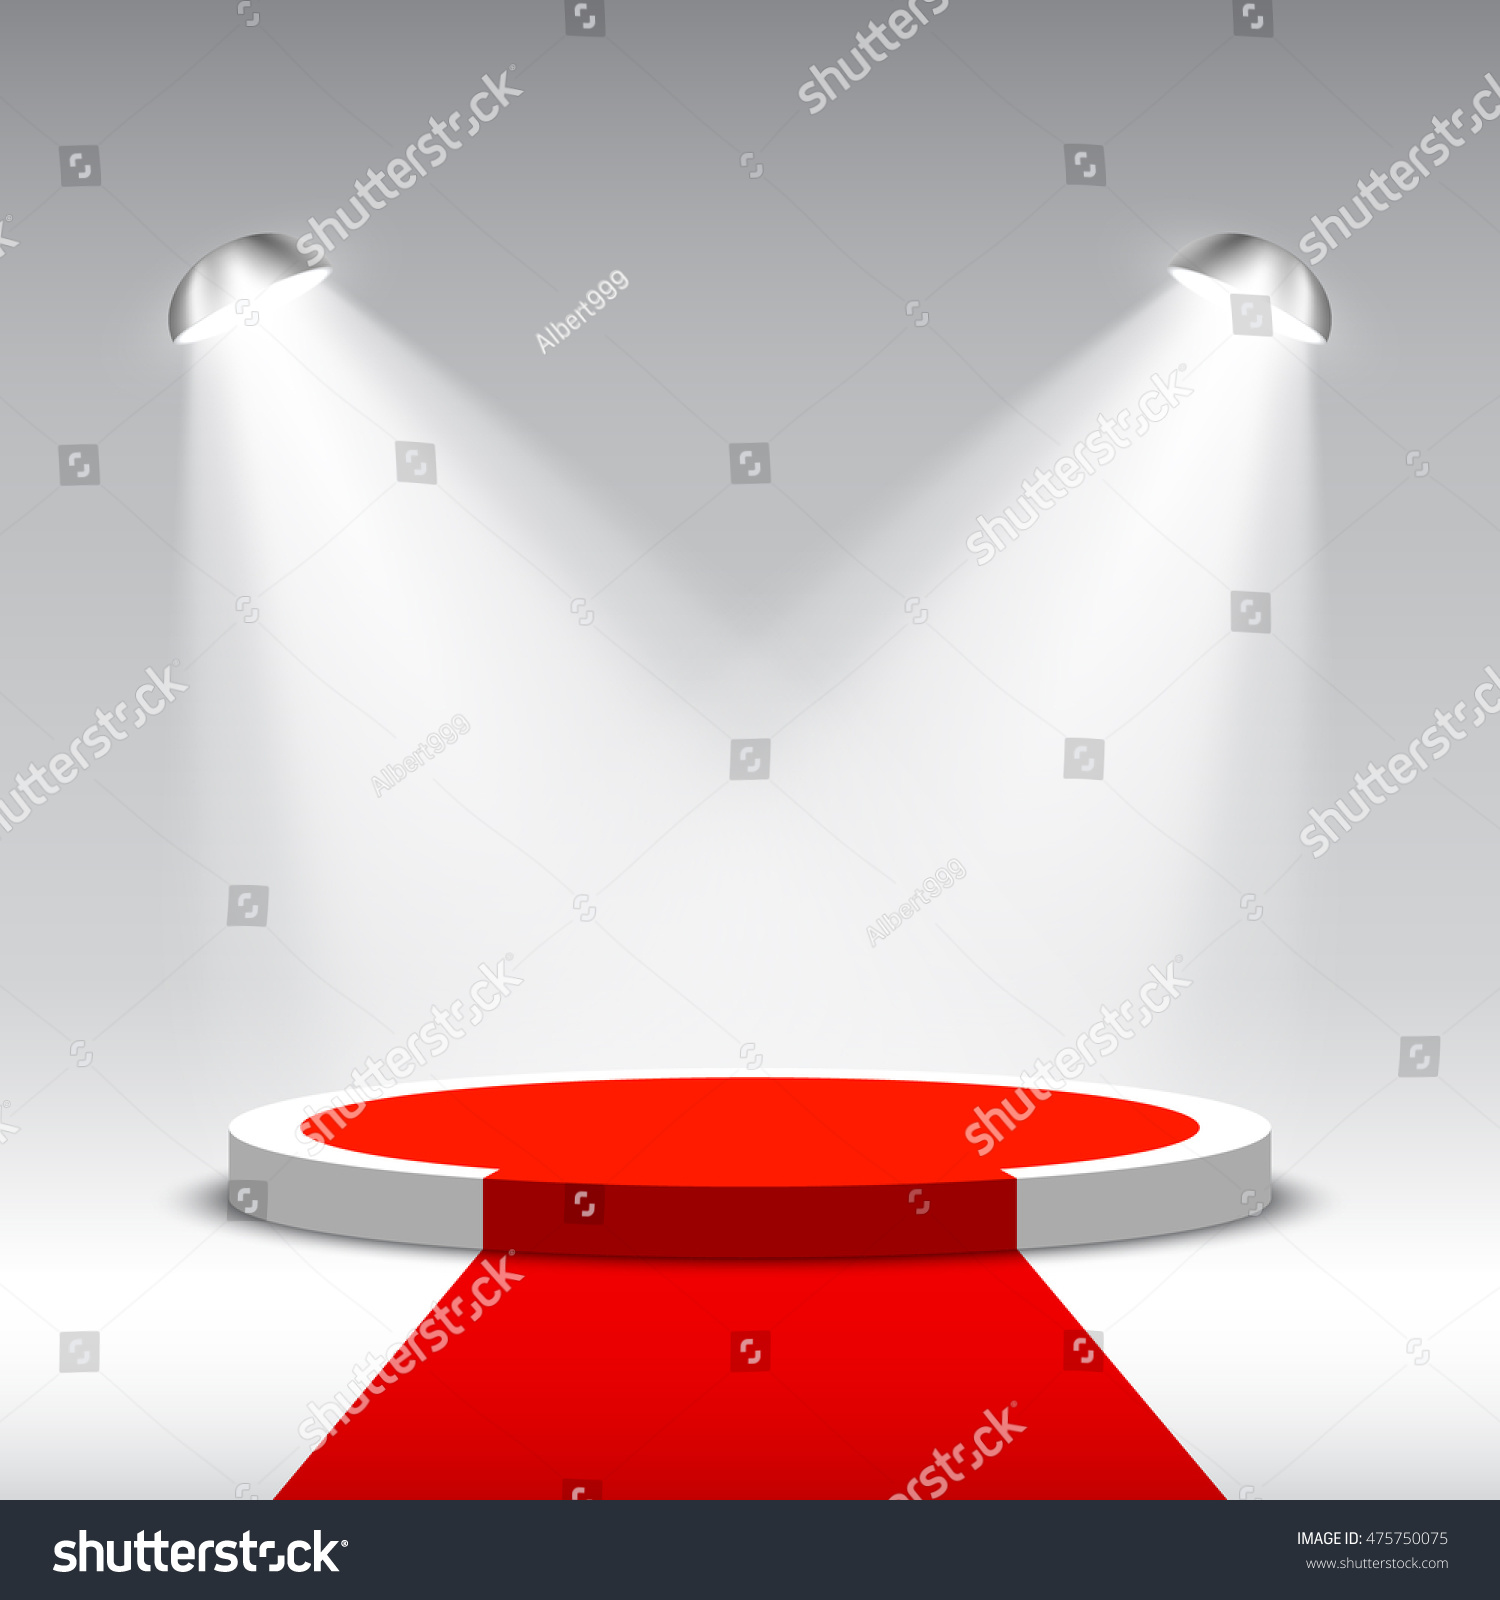 Stage for awards ceremony White round podium with red carpet Pedestal Scene Spotlight 3D Vector illustration